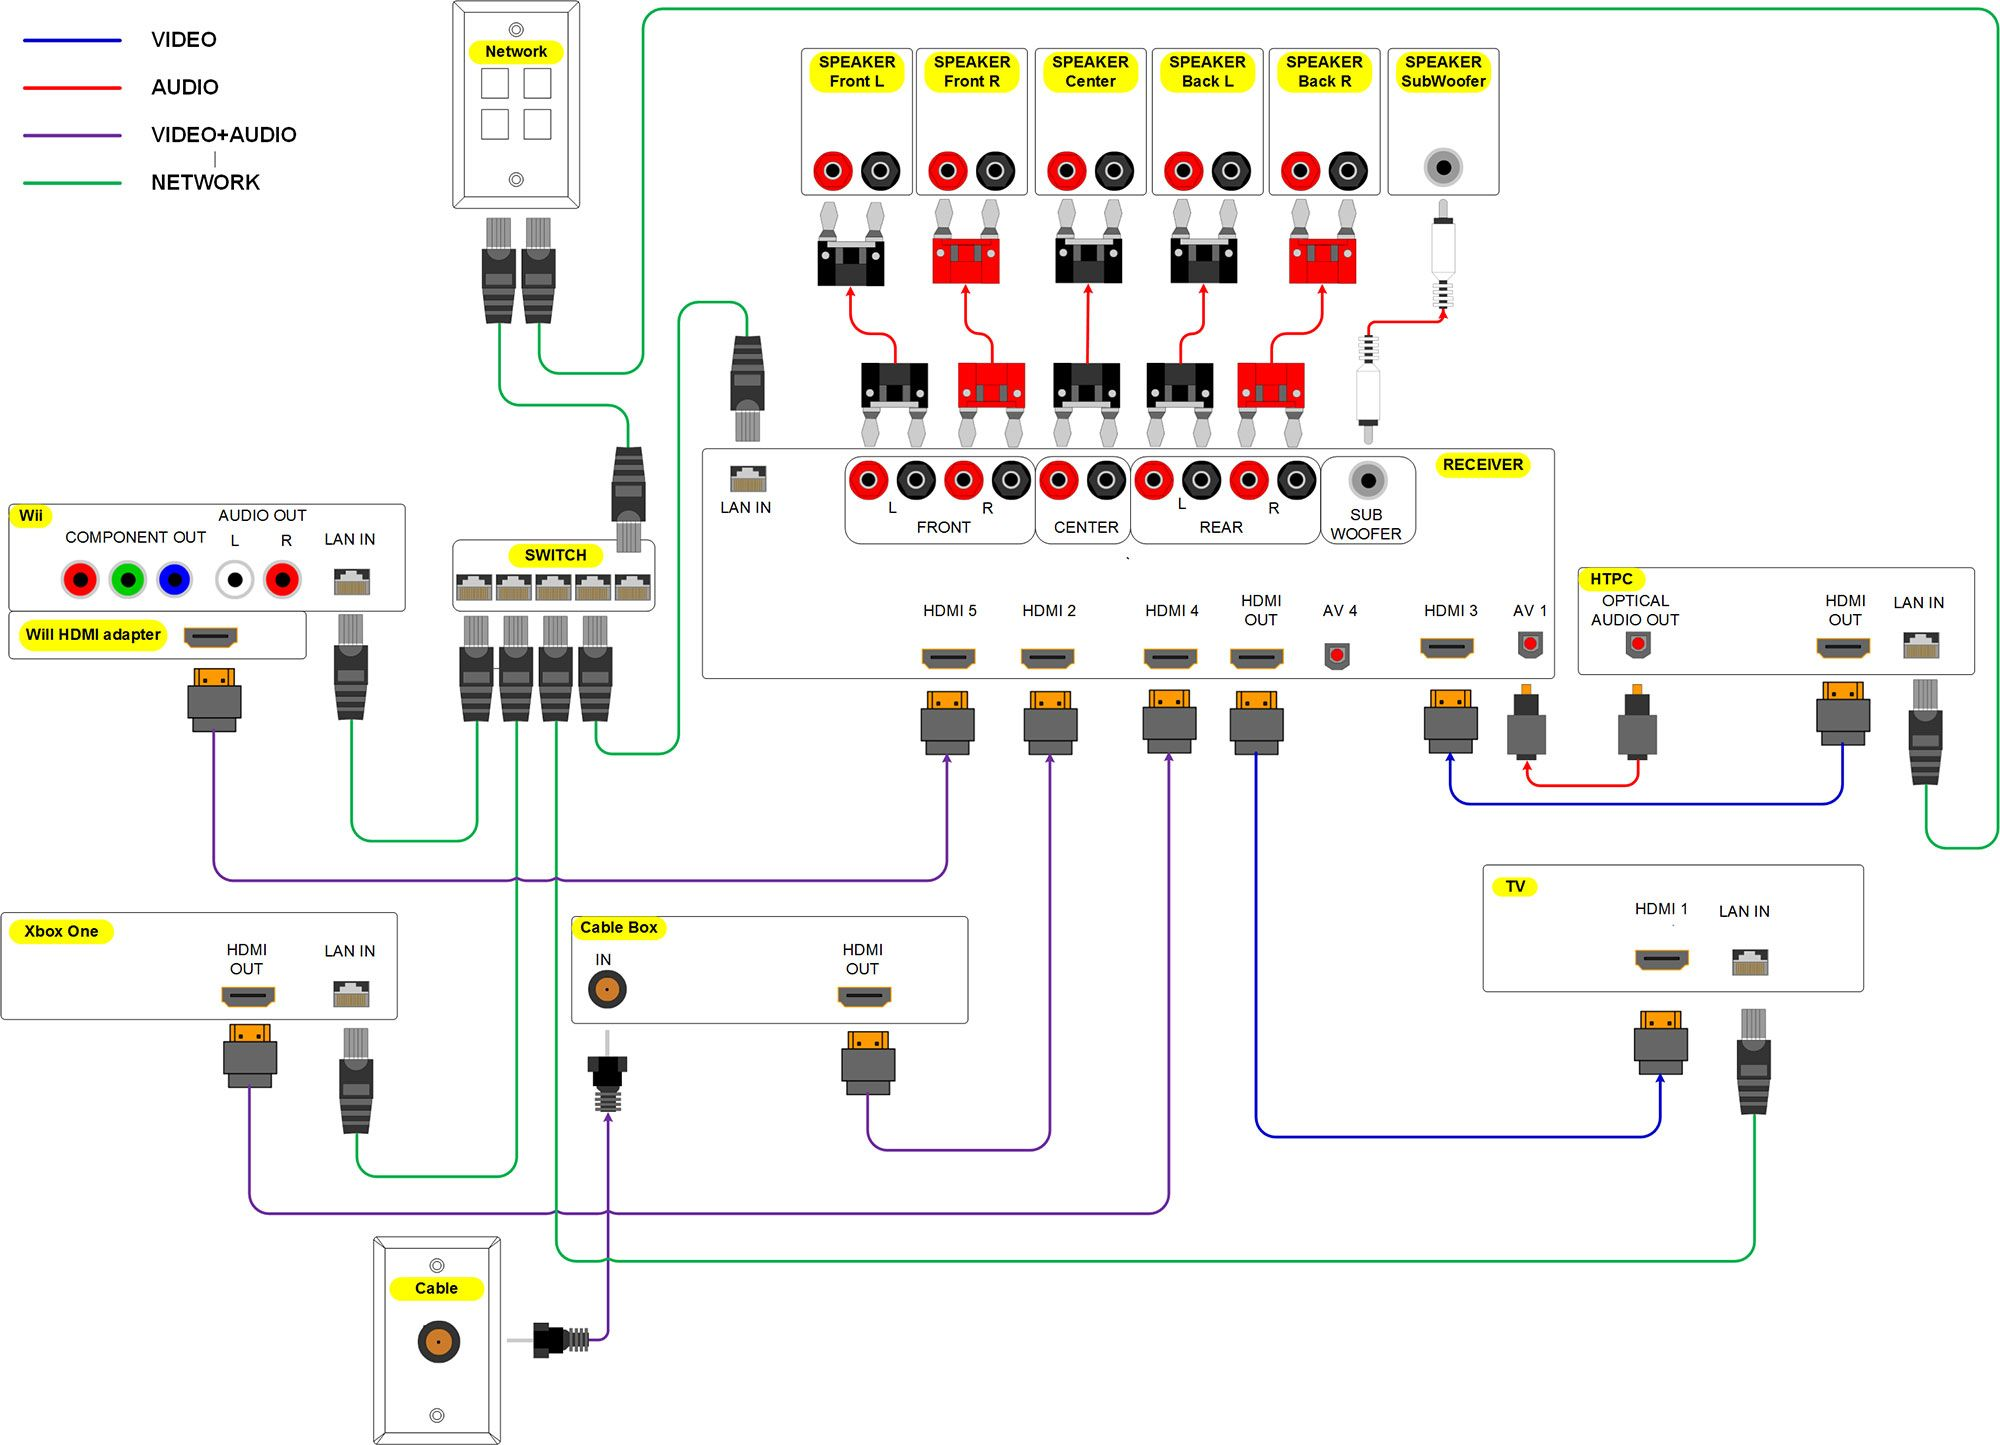 ae3ef715ed5d6ac384ec9c2b84075aef home speaker wiring diagram home audio wiring diagram \u2022 wiring house wire diagram at eliteediting.co